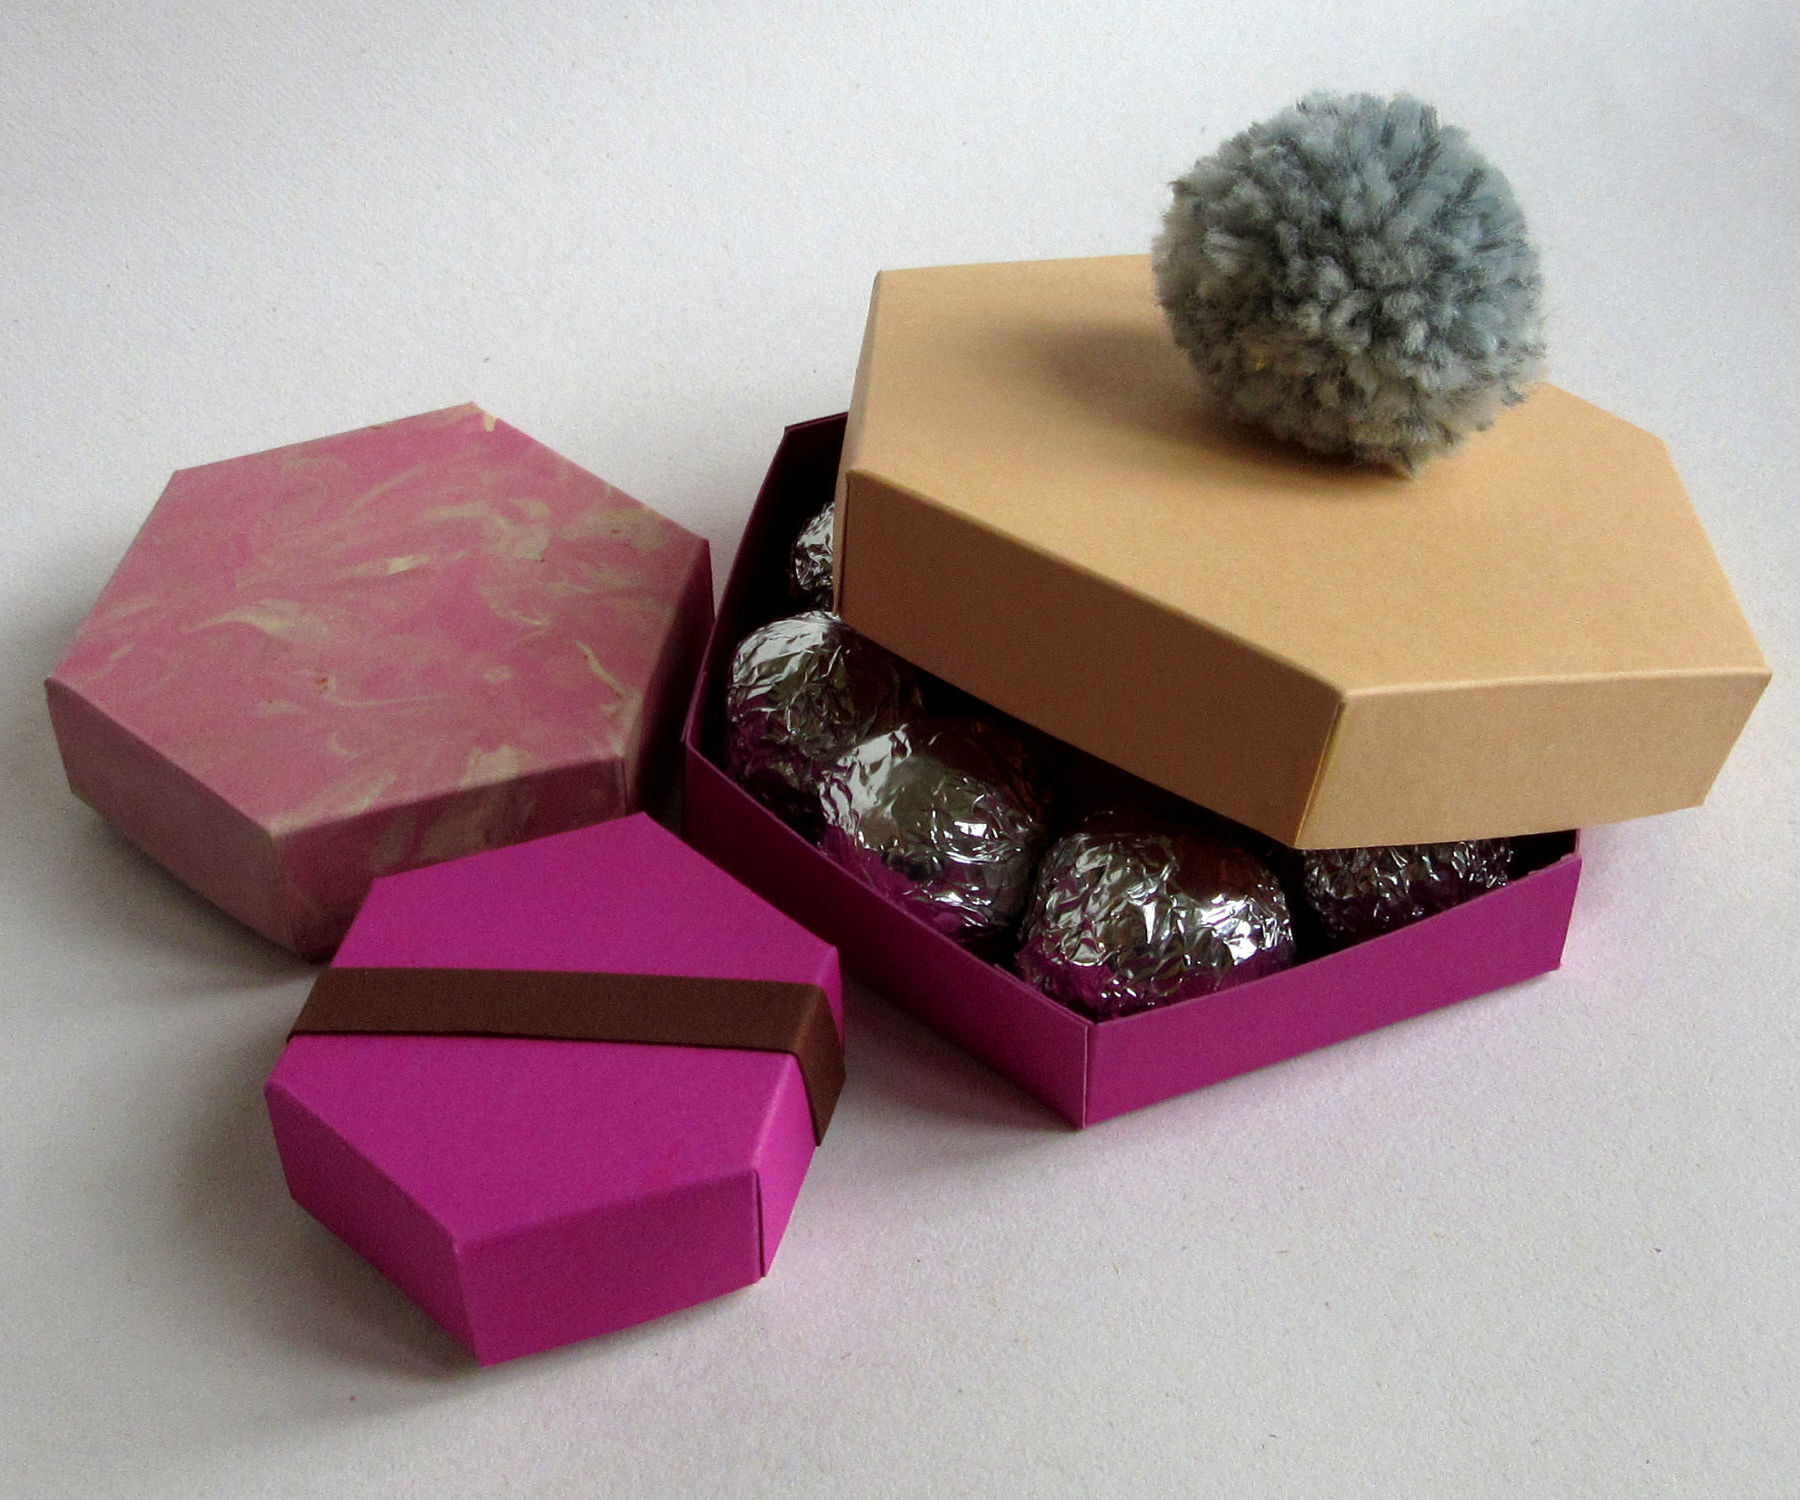 Hexagonal Cardboard Gift, Jewellery or Chocolate Box